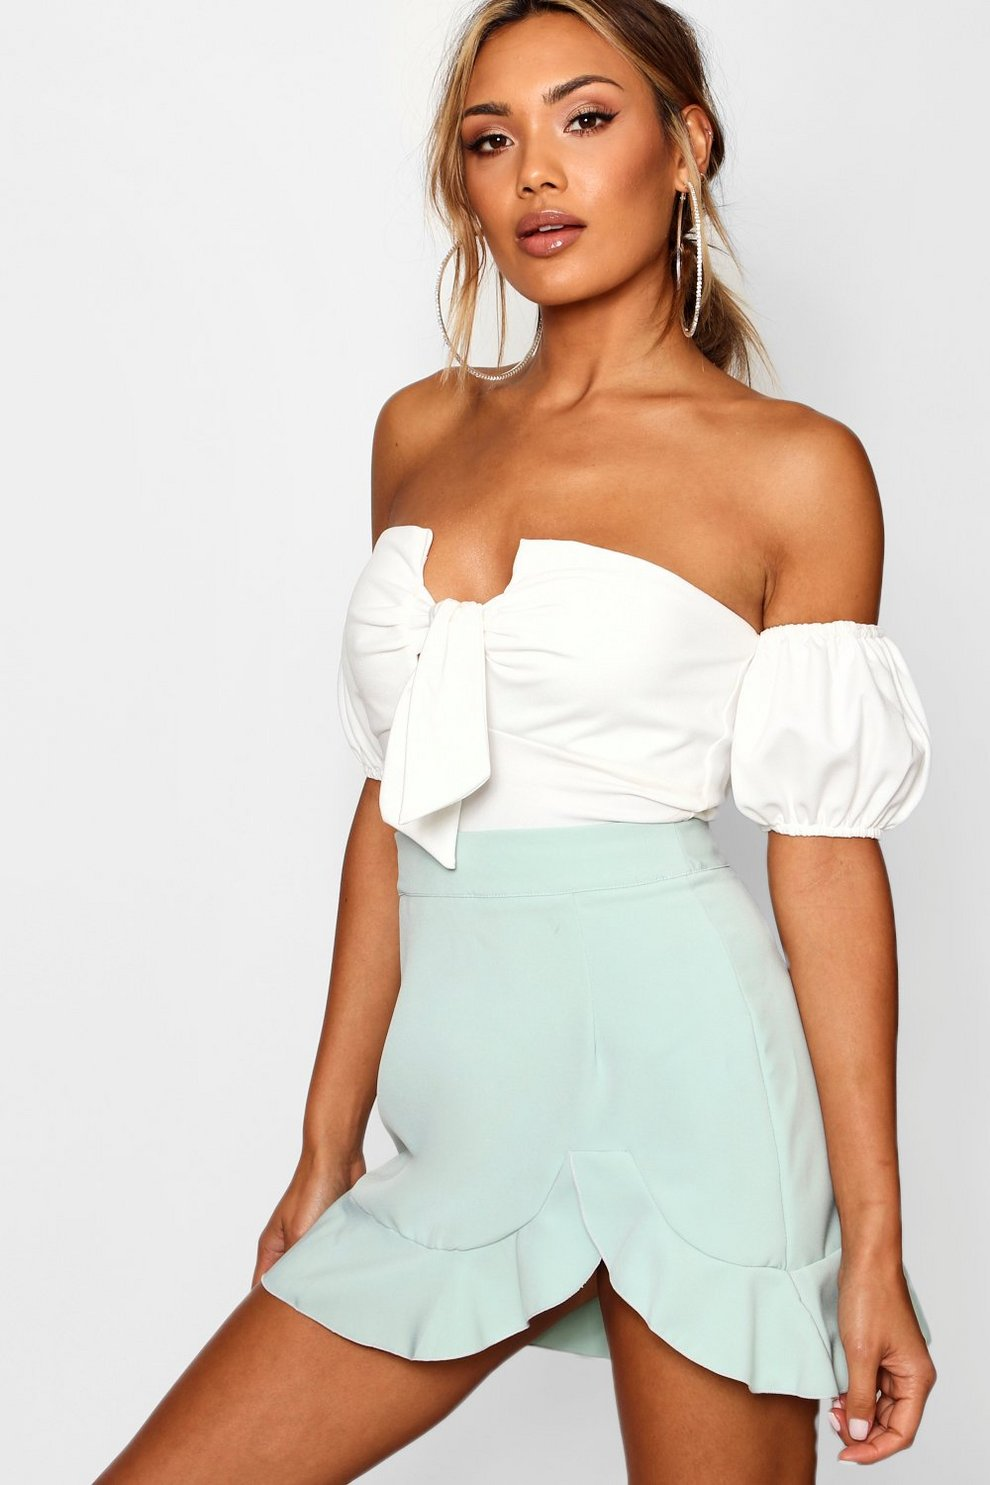 Boohoo Curved Hem Woven Mini Skirt Buy Cheap Official Outlet New Arrival Sale Huge Surprise Purchase Sale Online Latest Cheap Online 8o5uw3